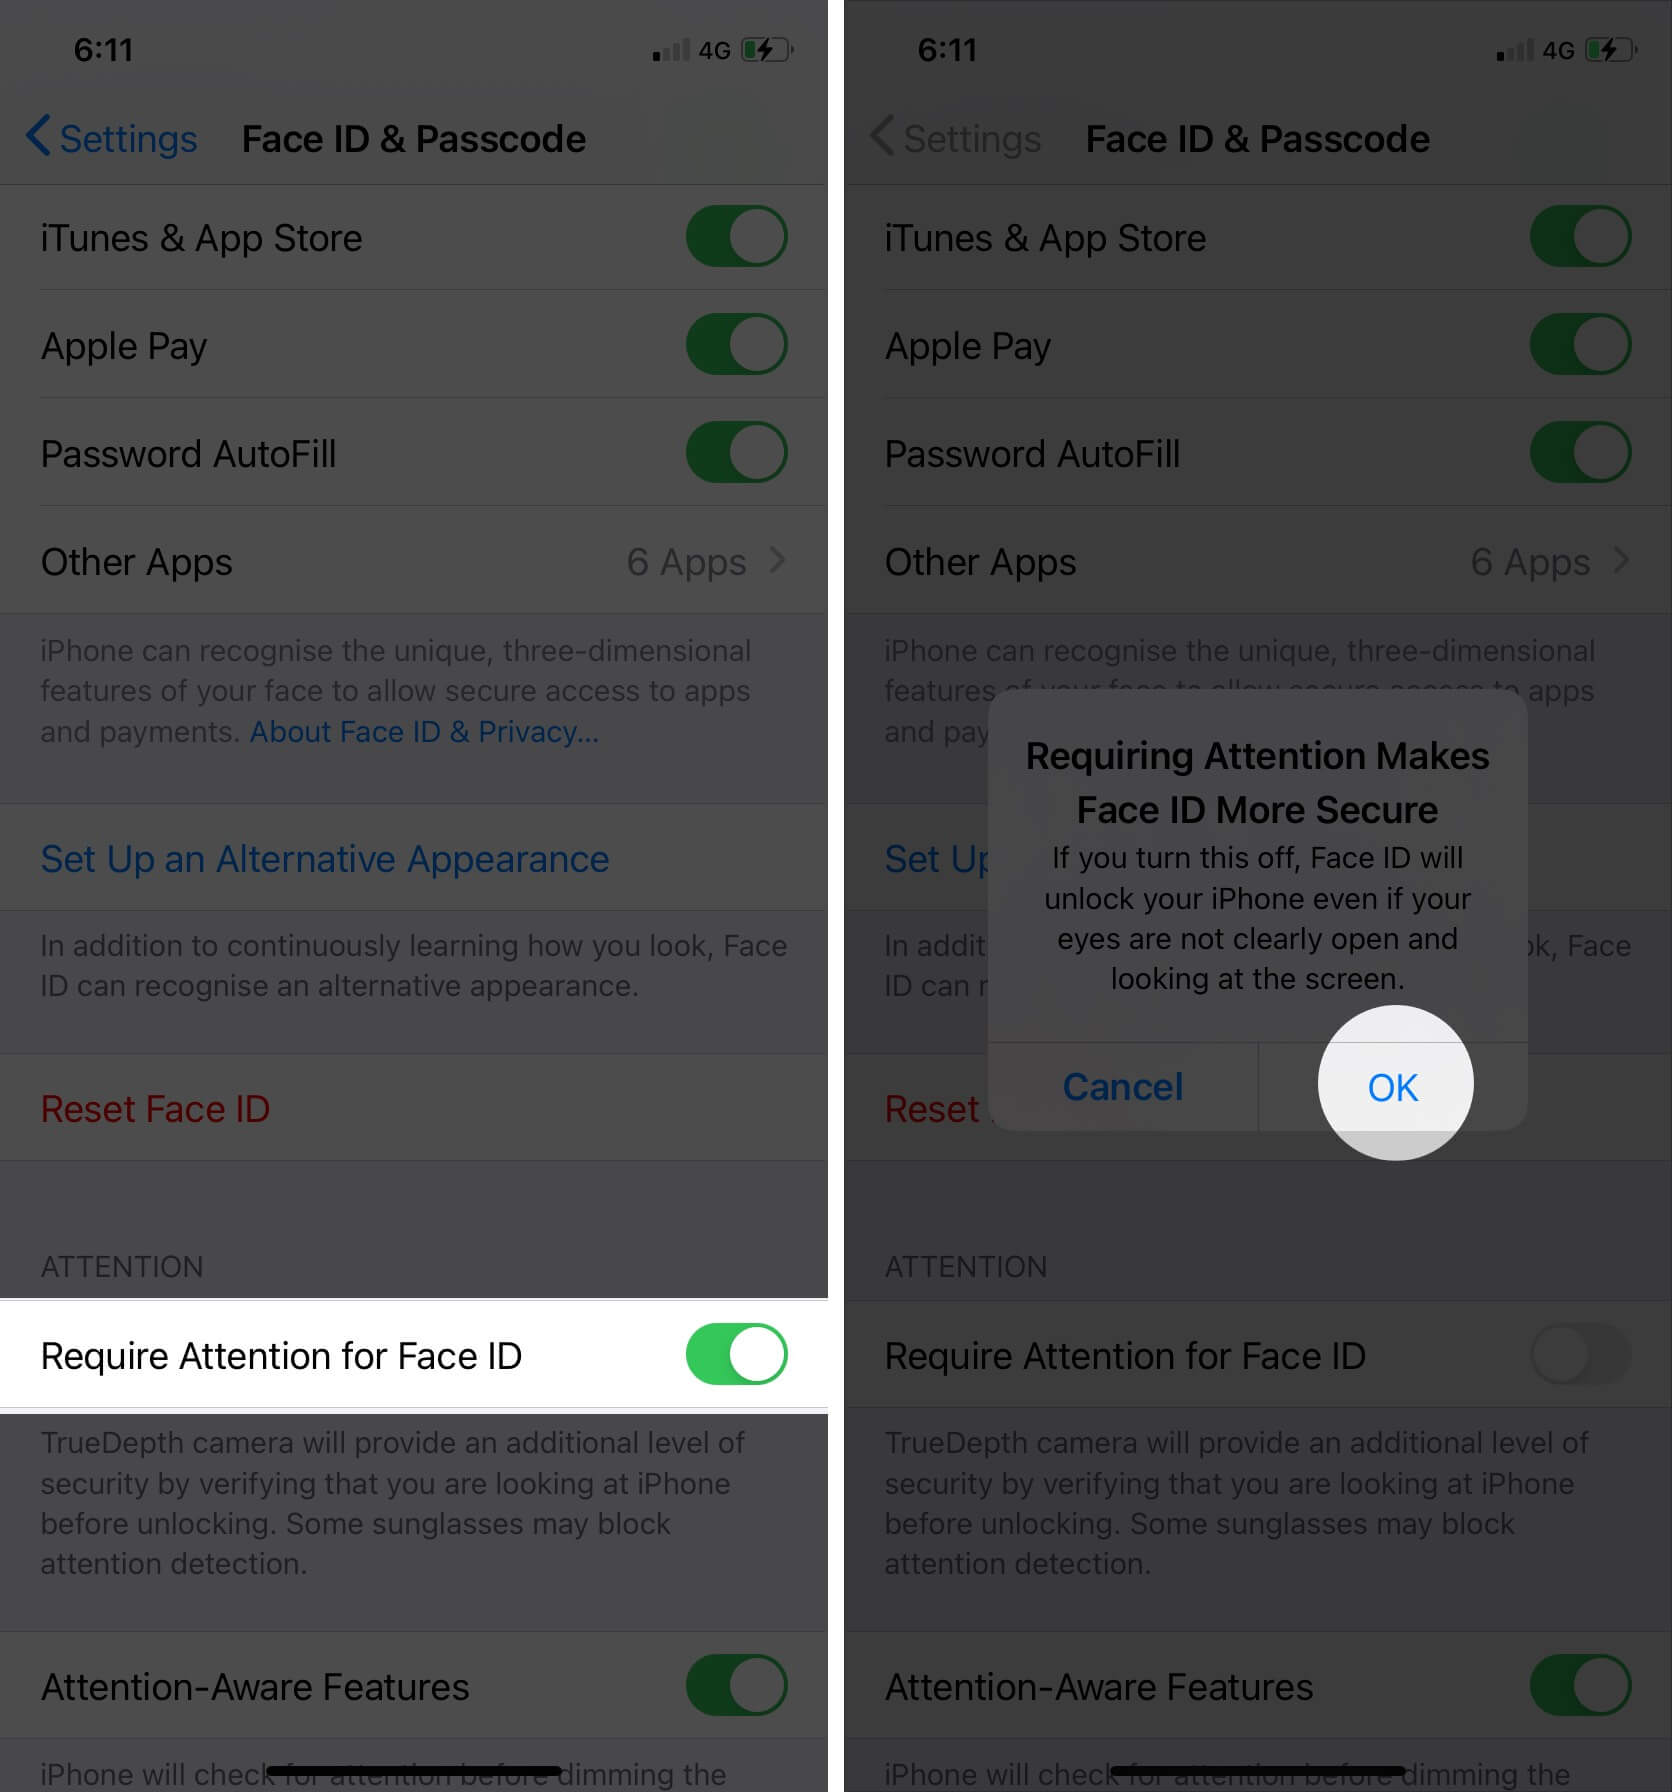 turn off require attention for face id